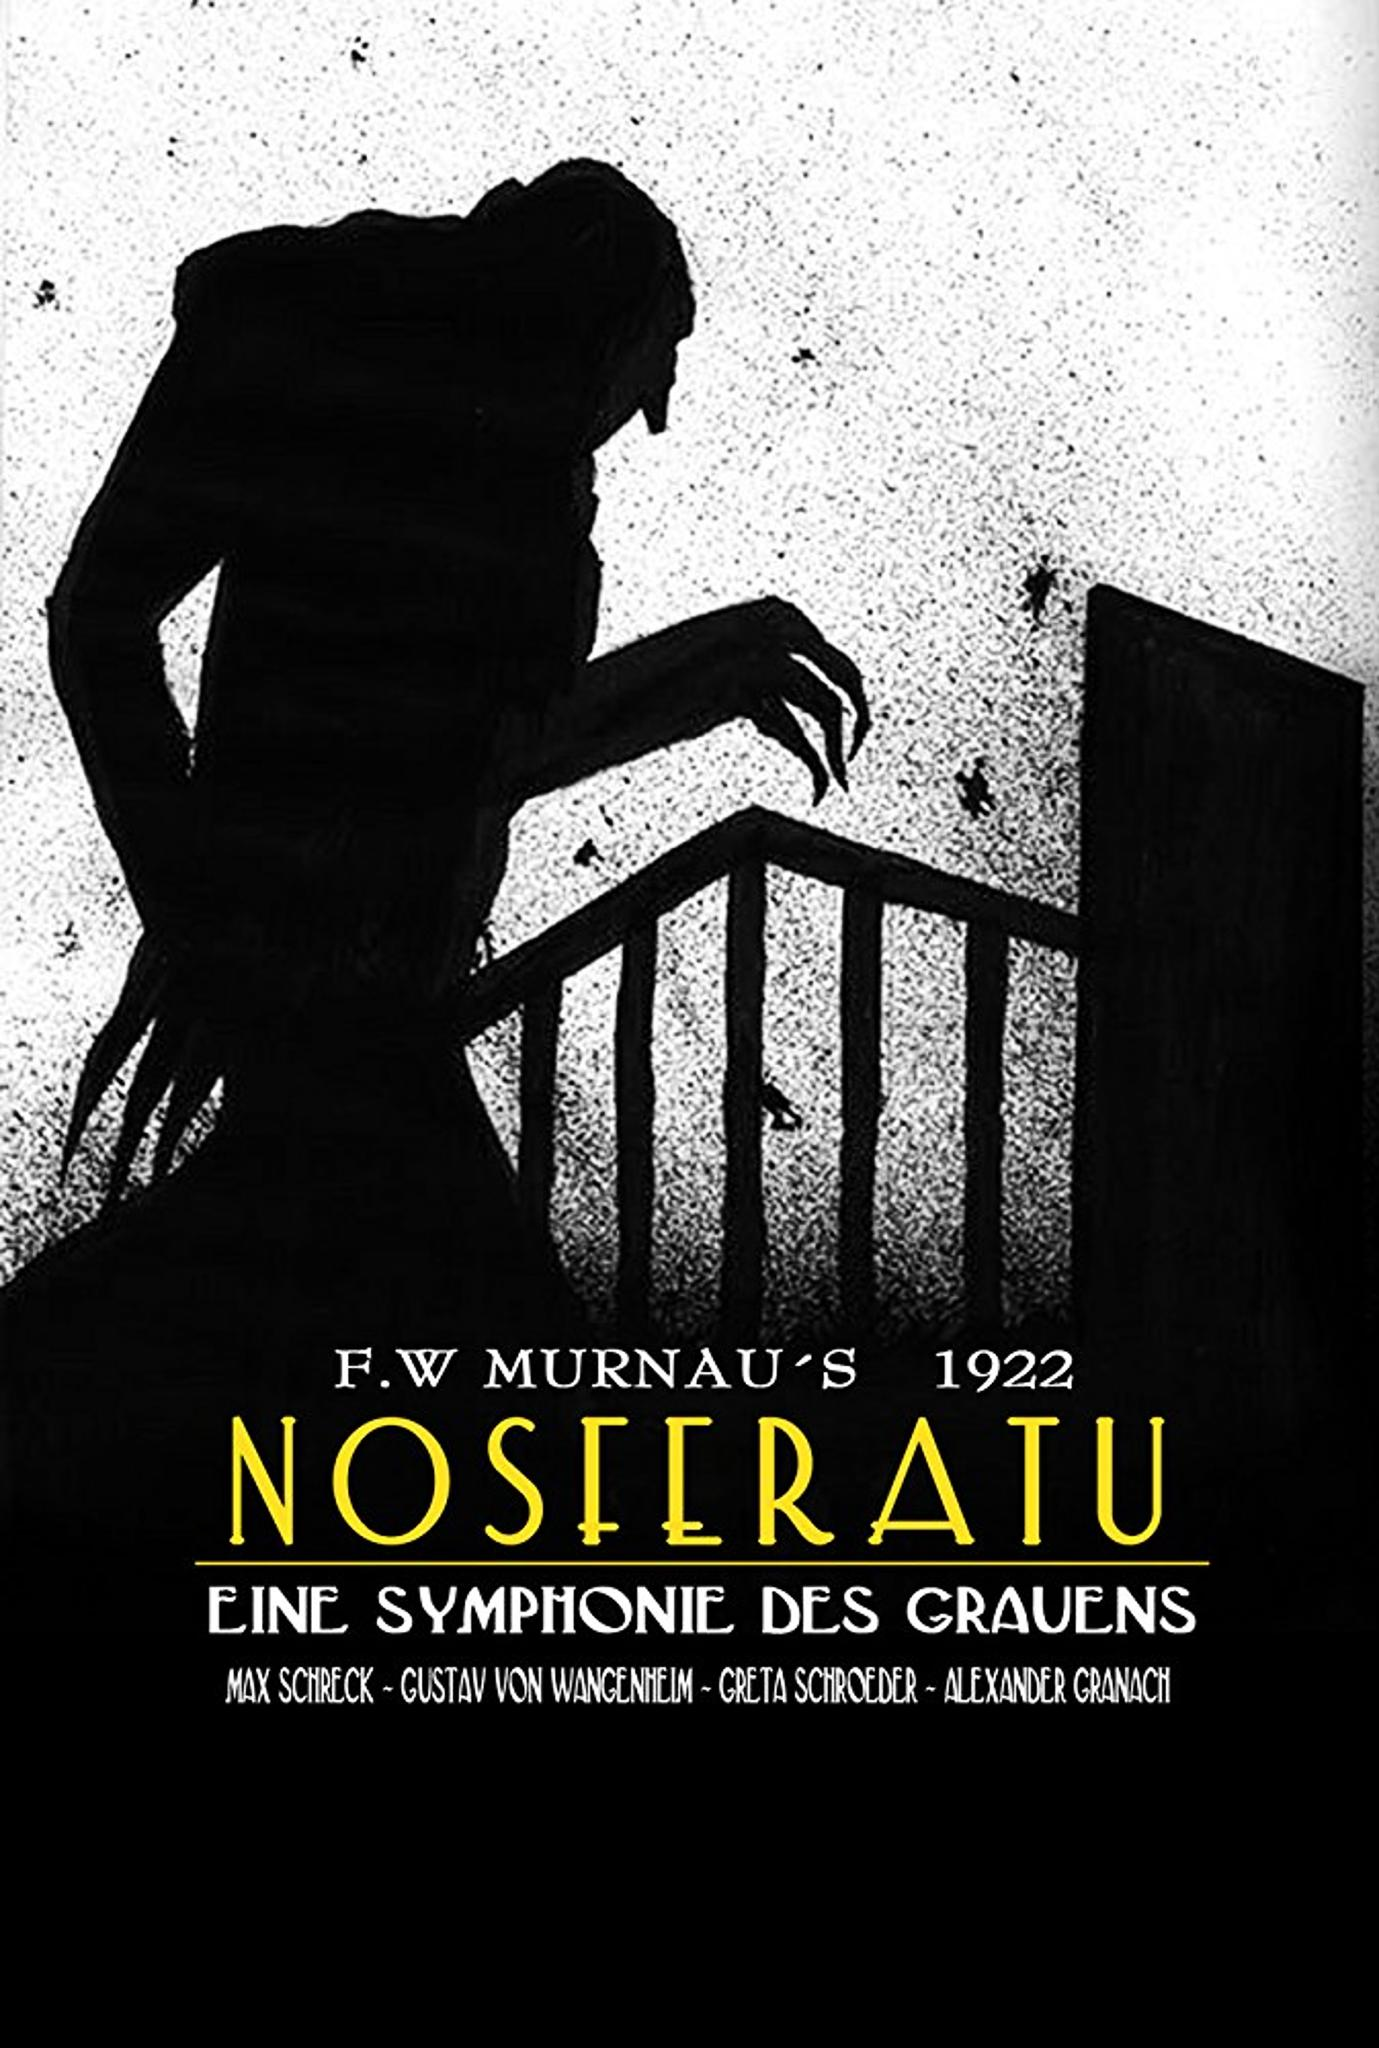 Nosferatu (1922) - Directed by: F.W. MurnauStarring: Max Schreck, Gustav von Wangenheim, Greta Schroder, Alexander GranachRated: NR (Suggested PG for Some Scary Images)Running Time: 1 h 34 mTMM Score: 4.5 stars out of 5STRENGTHS: Max Schreck, Cinematography, Direction, ActingWEAKNESSES: Pacing